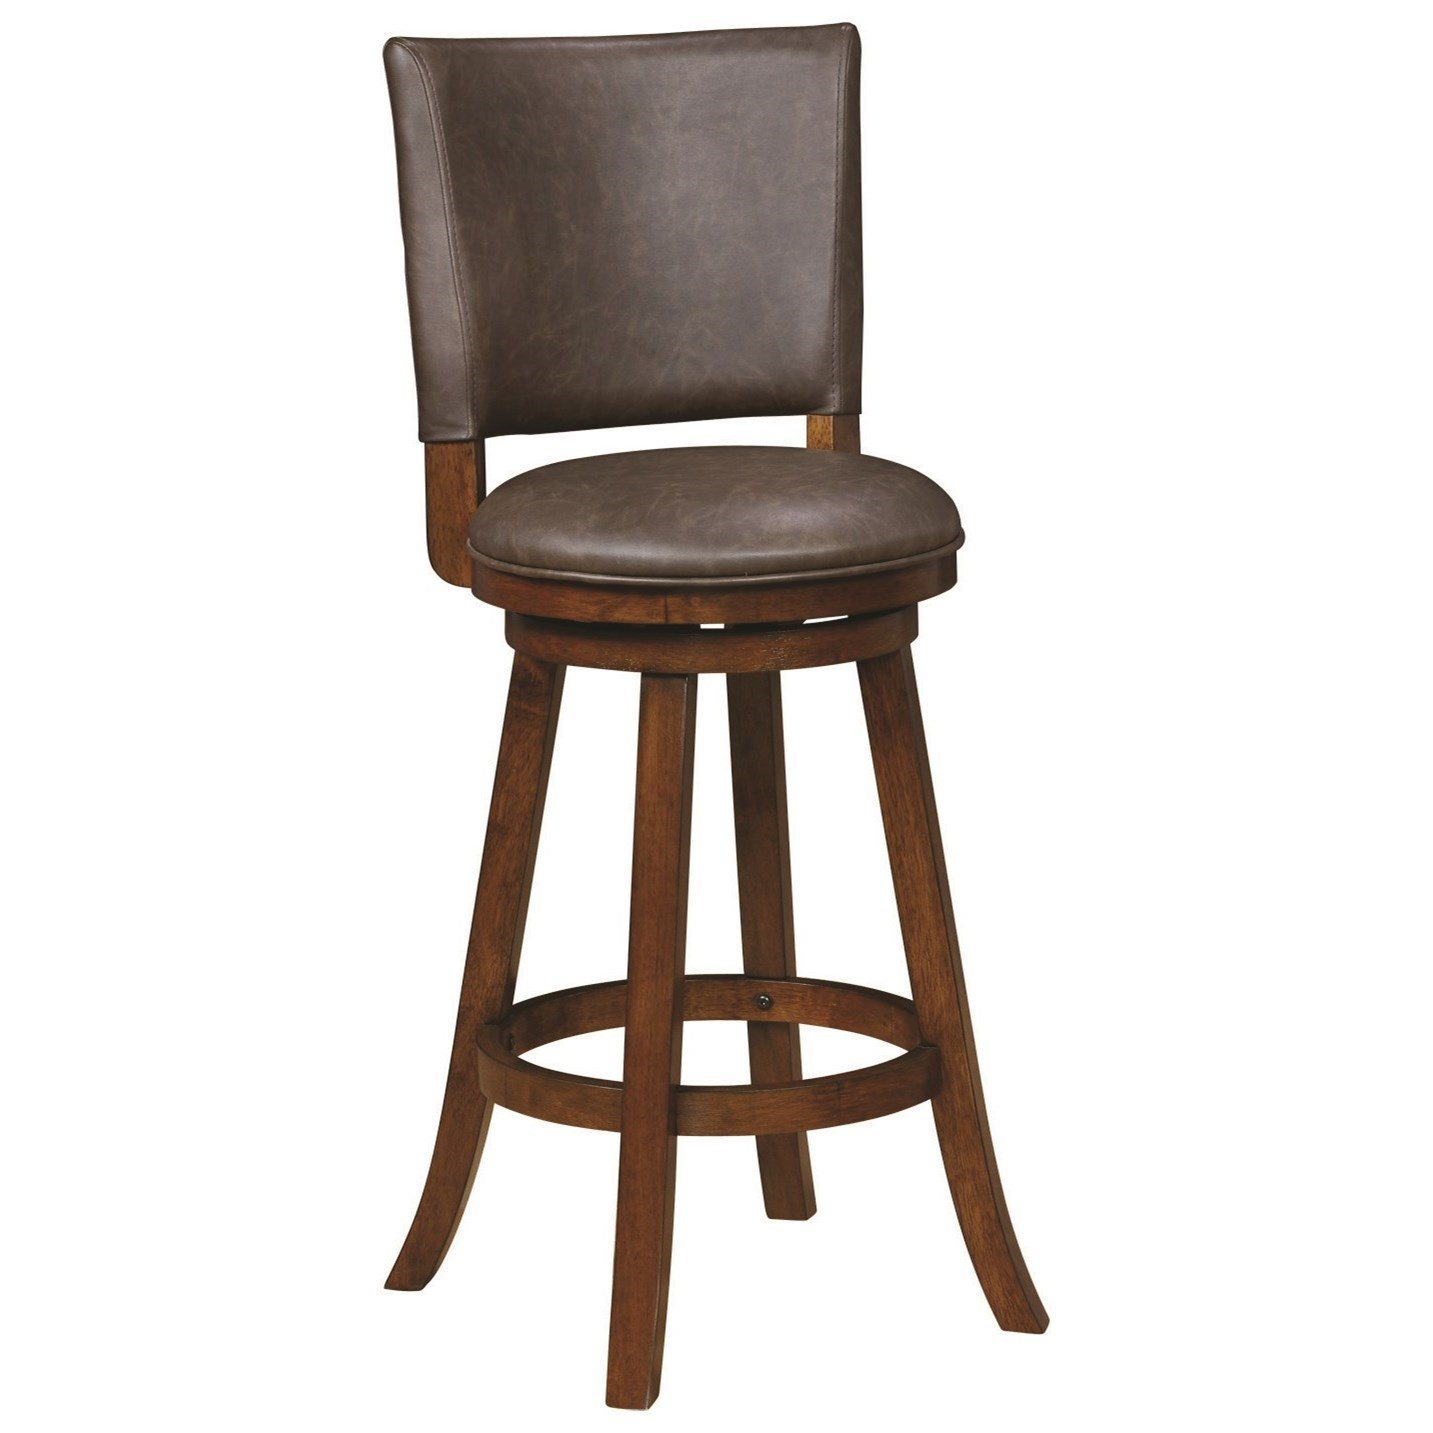 Ordinaire Coaster Dining Chairs And Bar StoolsBar Stool ...